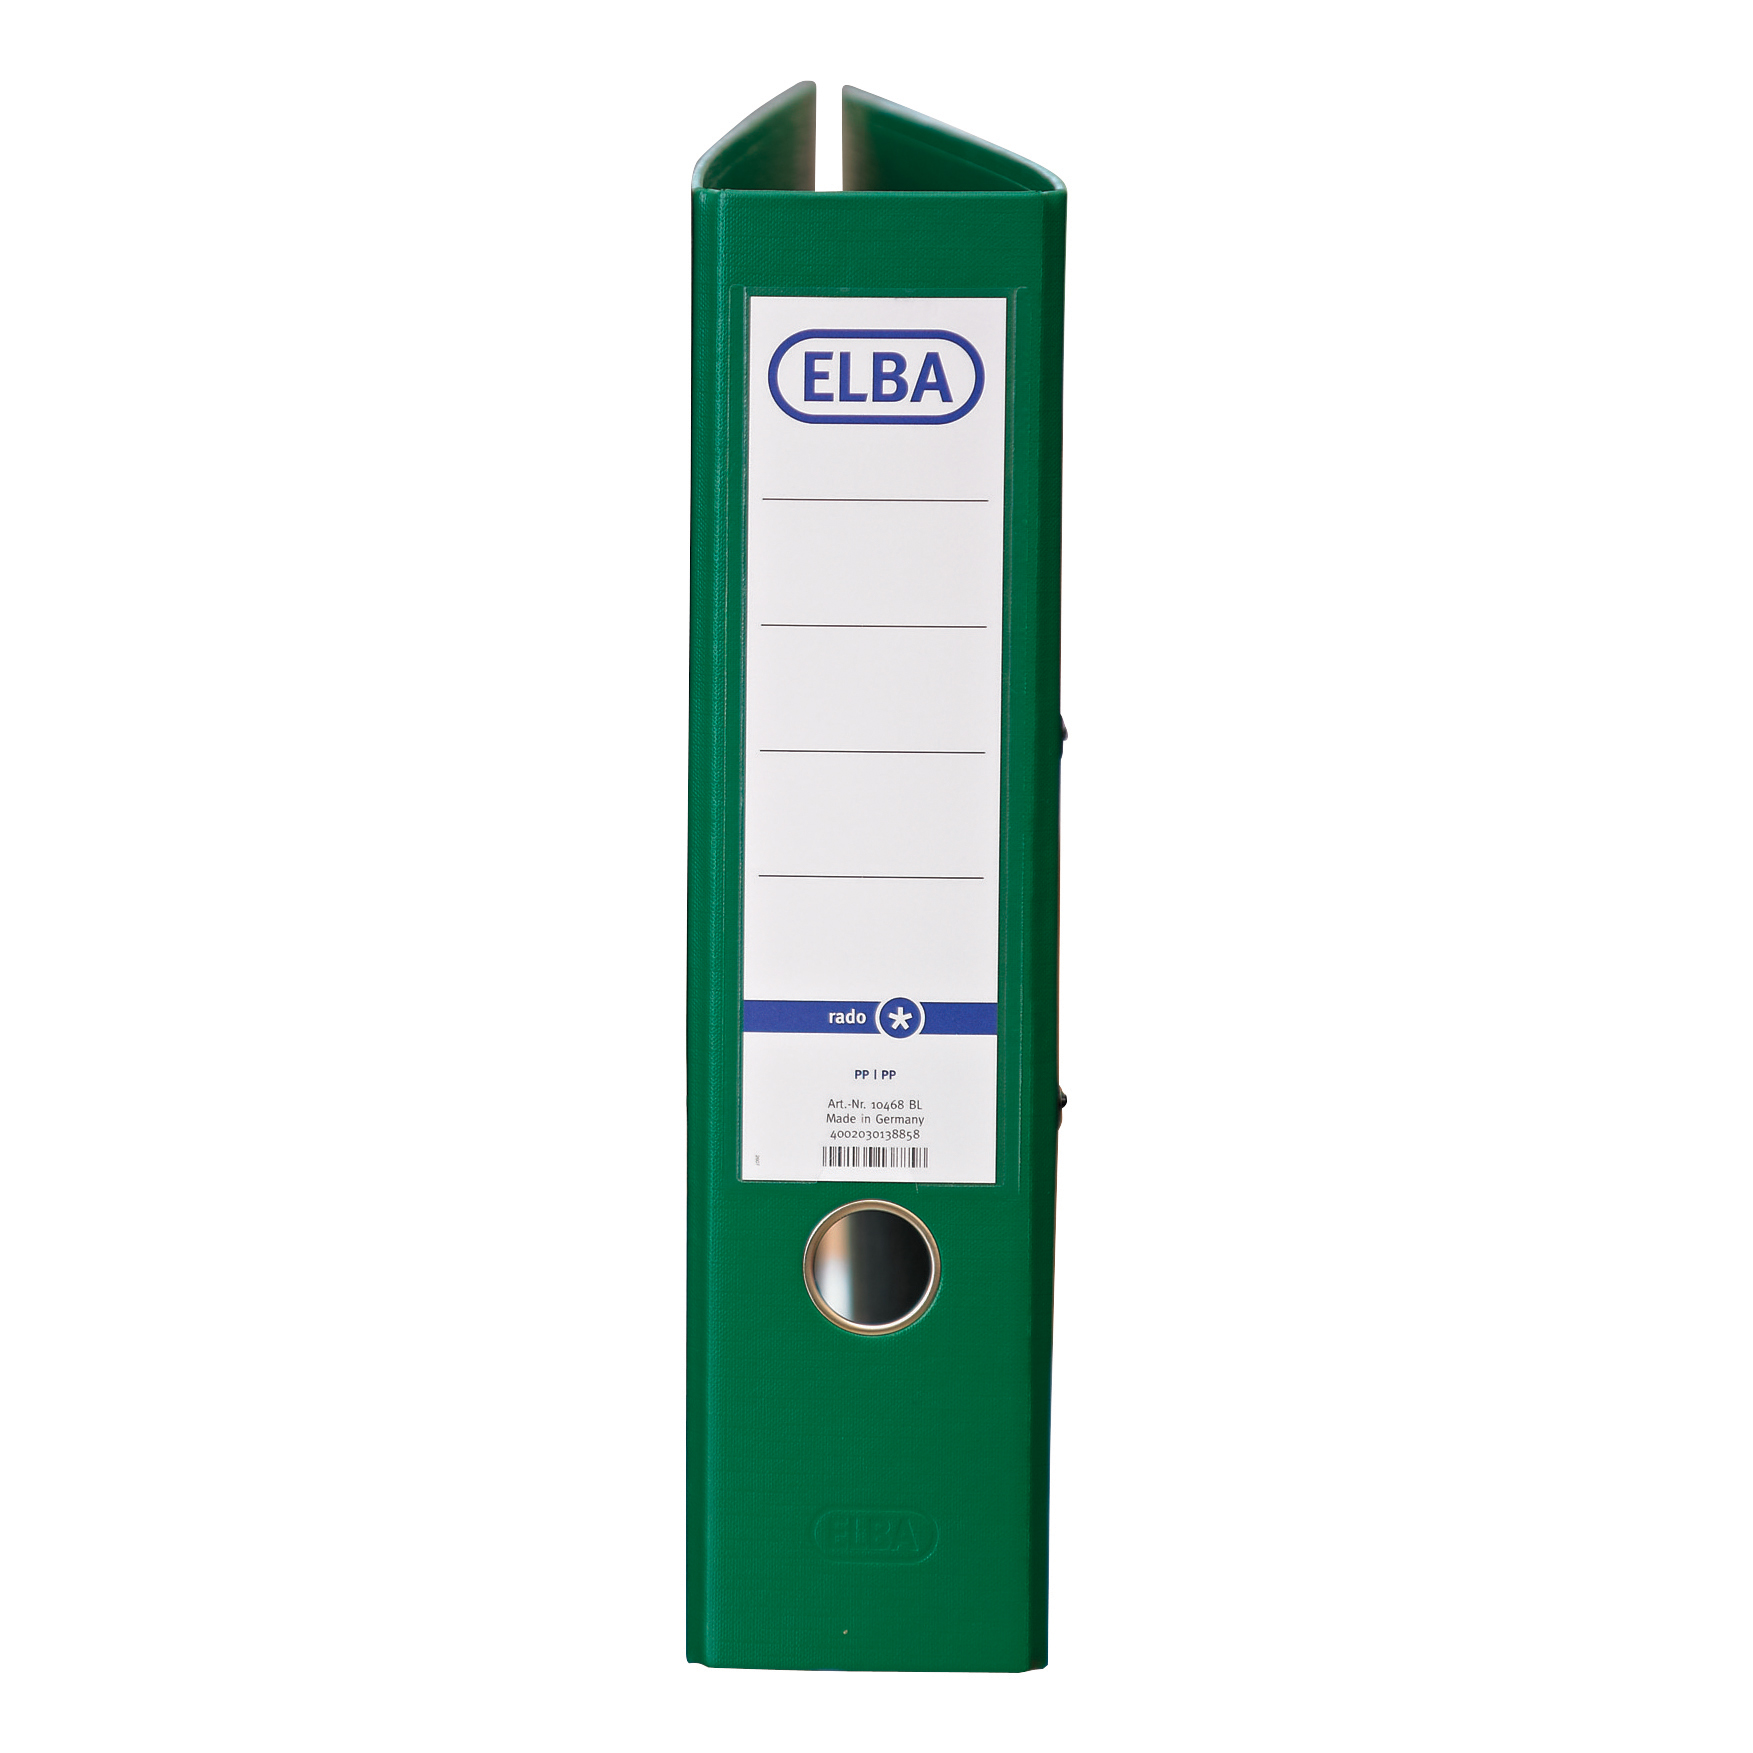 Elba Lever Arch File A4 Coloured Paper on Board Capacity 70mm Green Ref 100202219 [Pack 10]